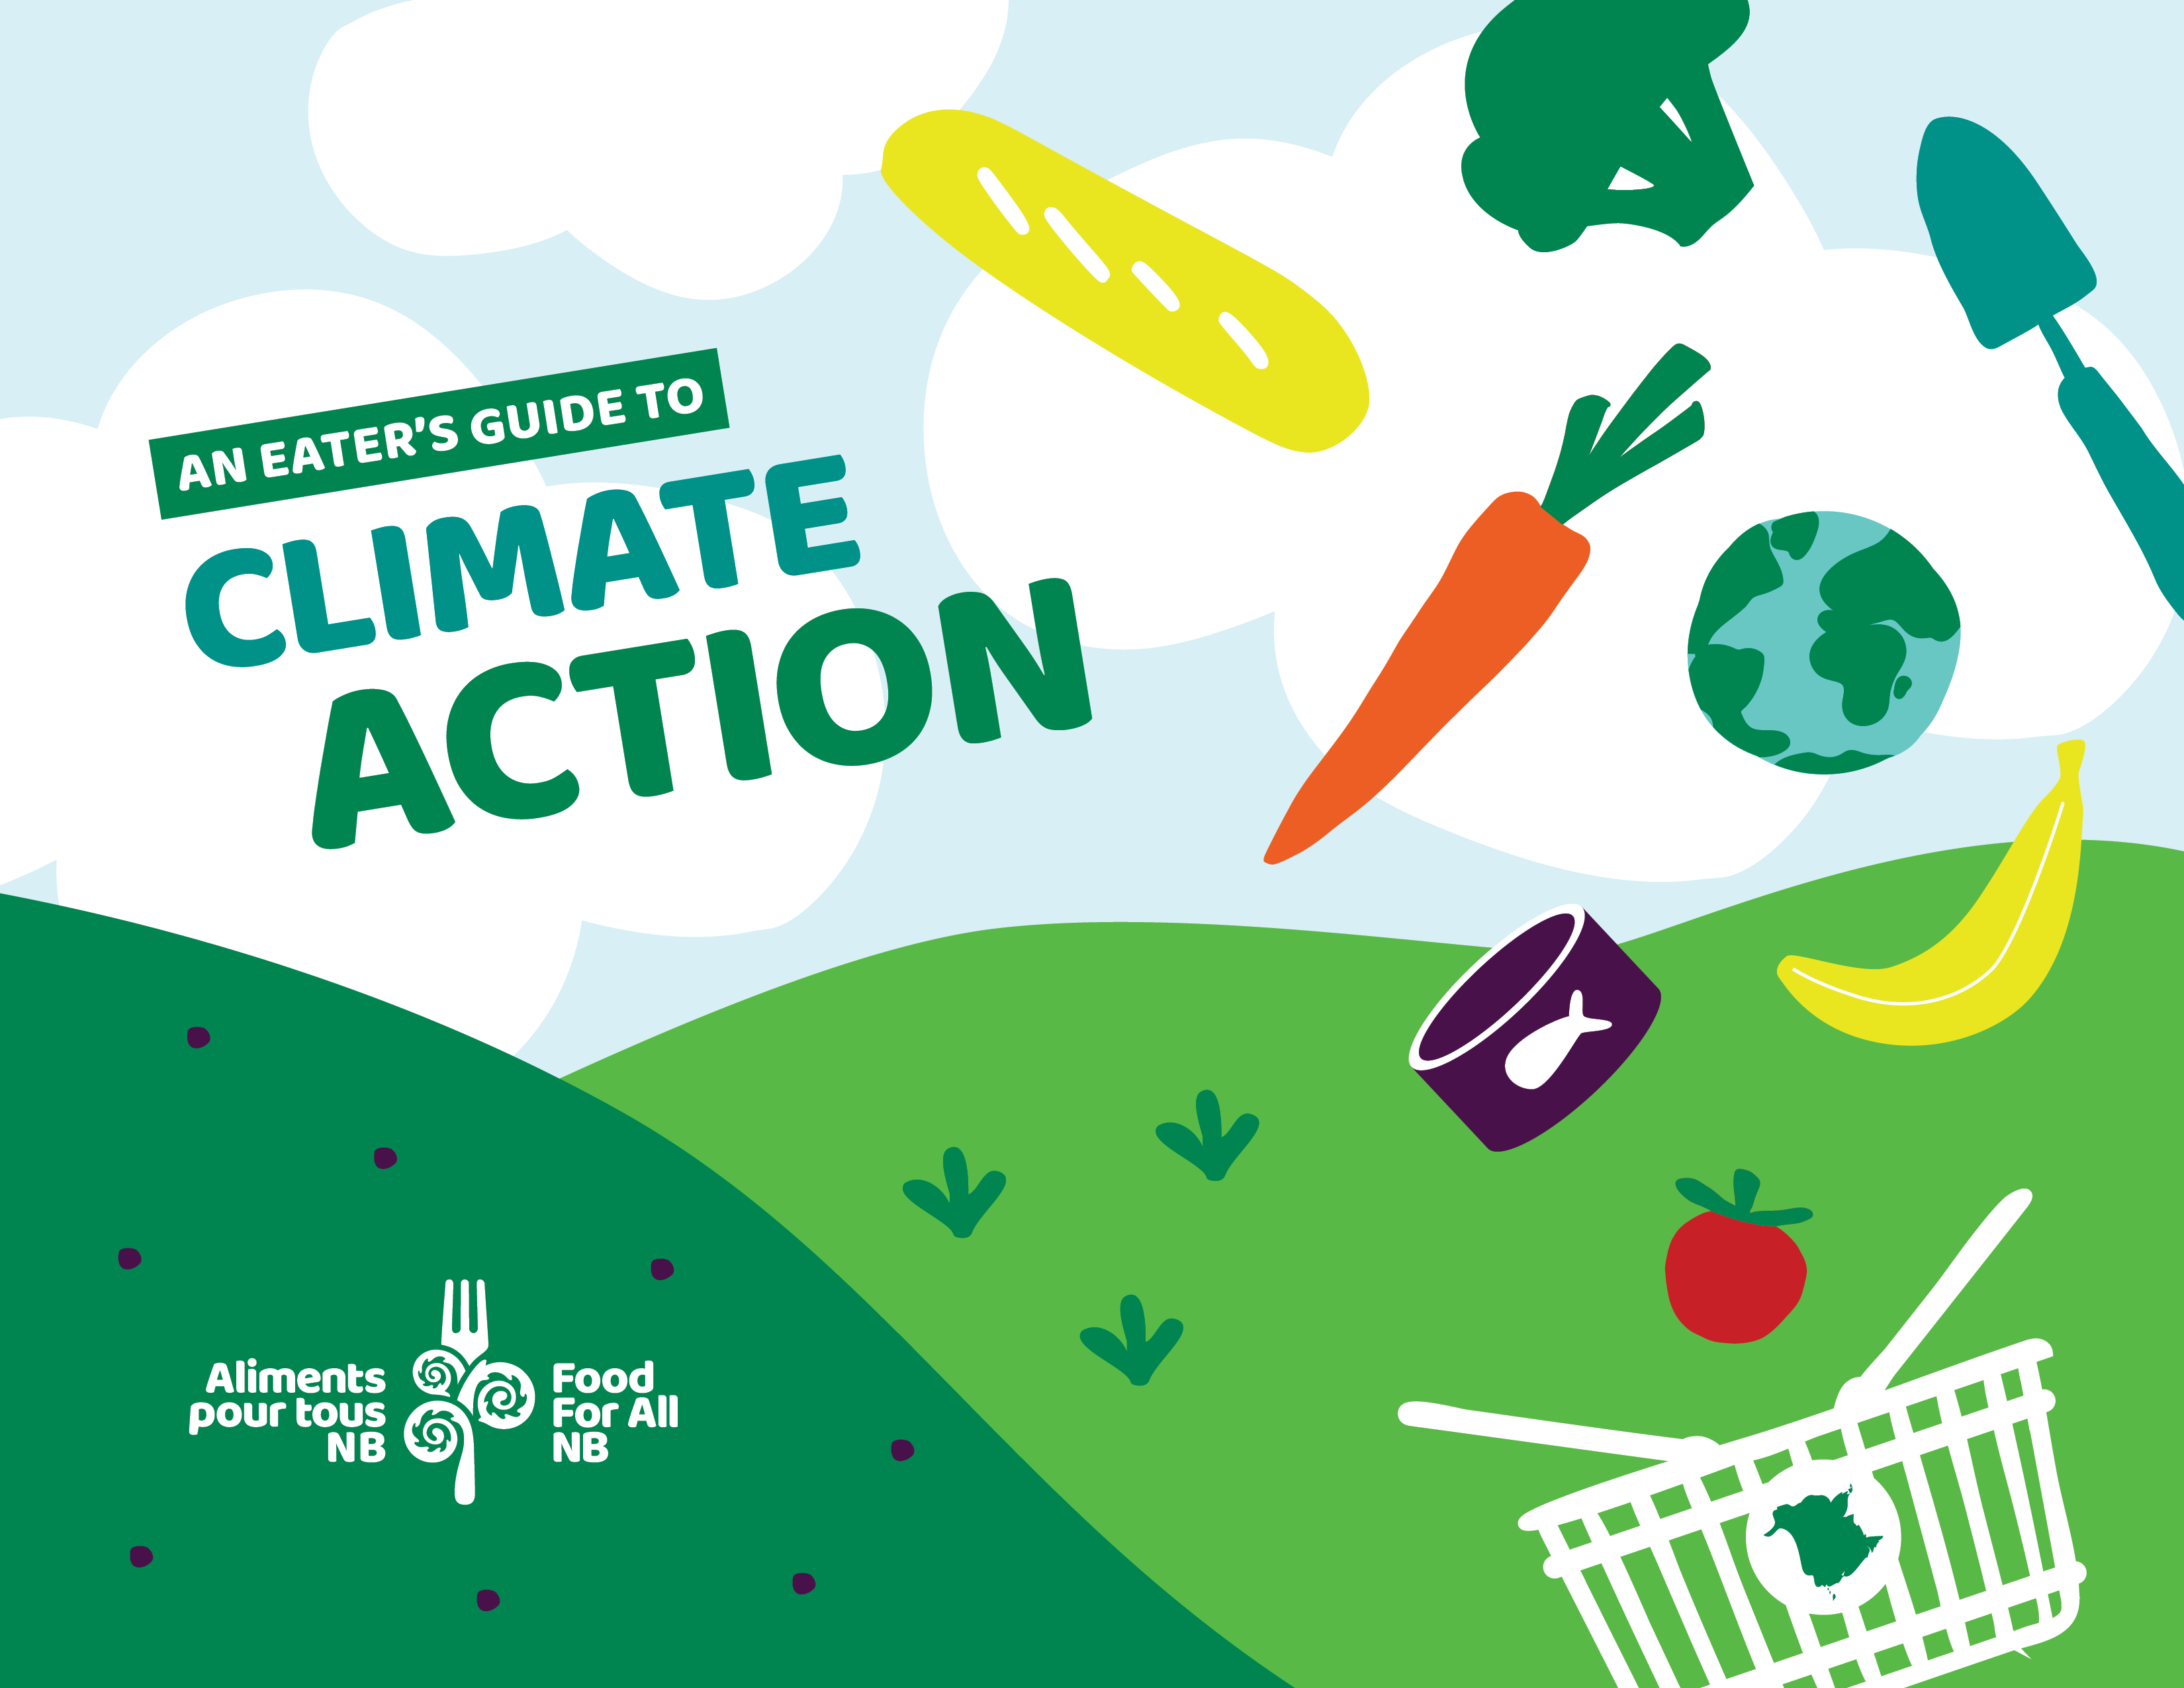 An Eater's Guide to Climate Action